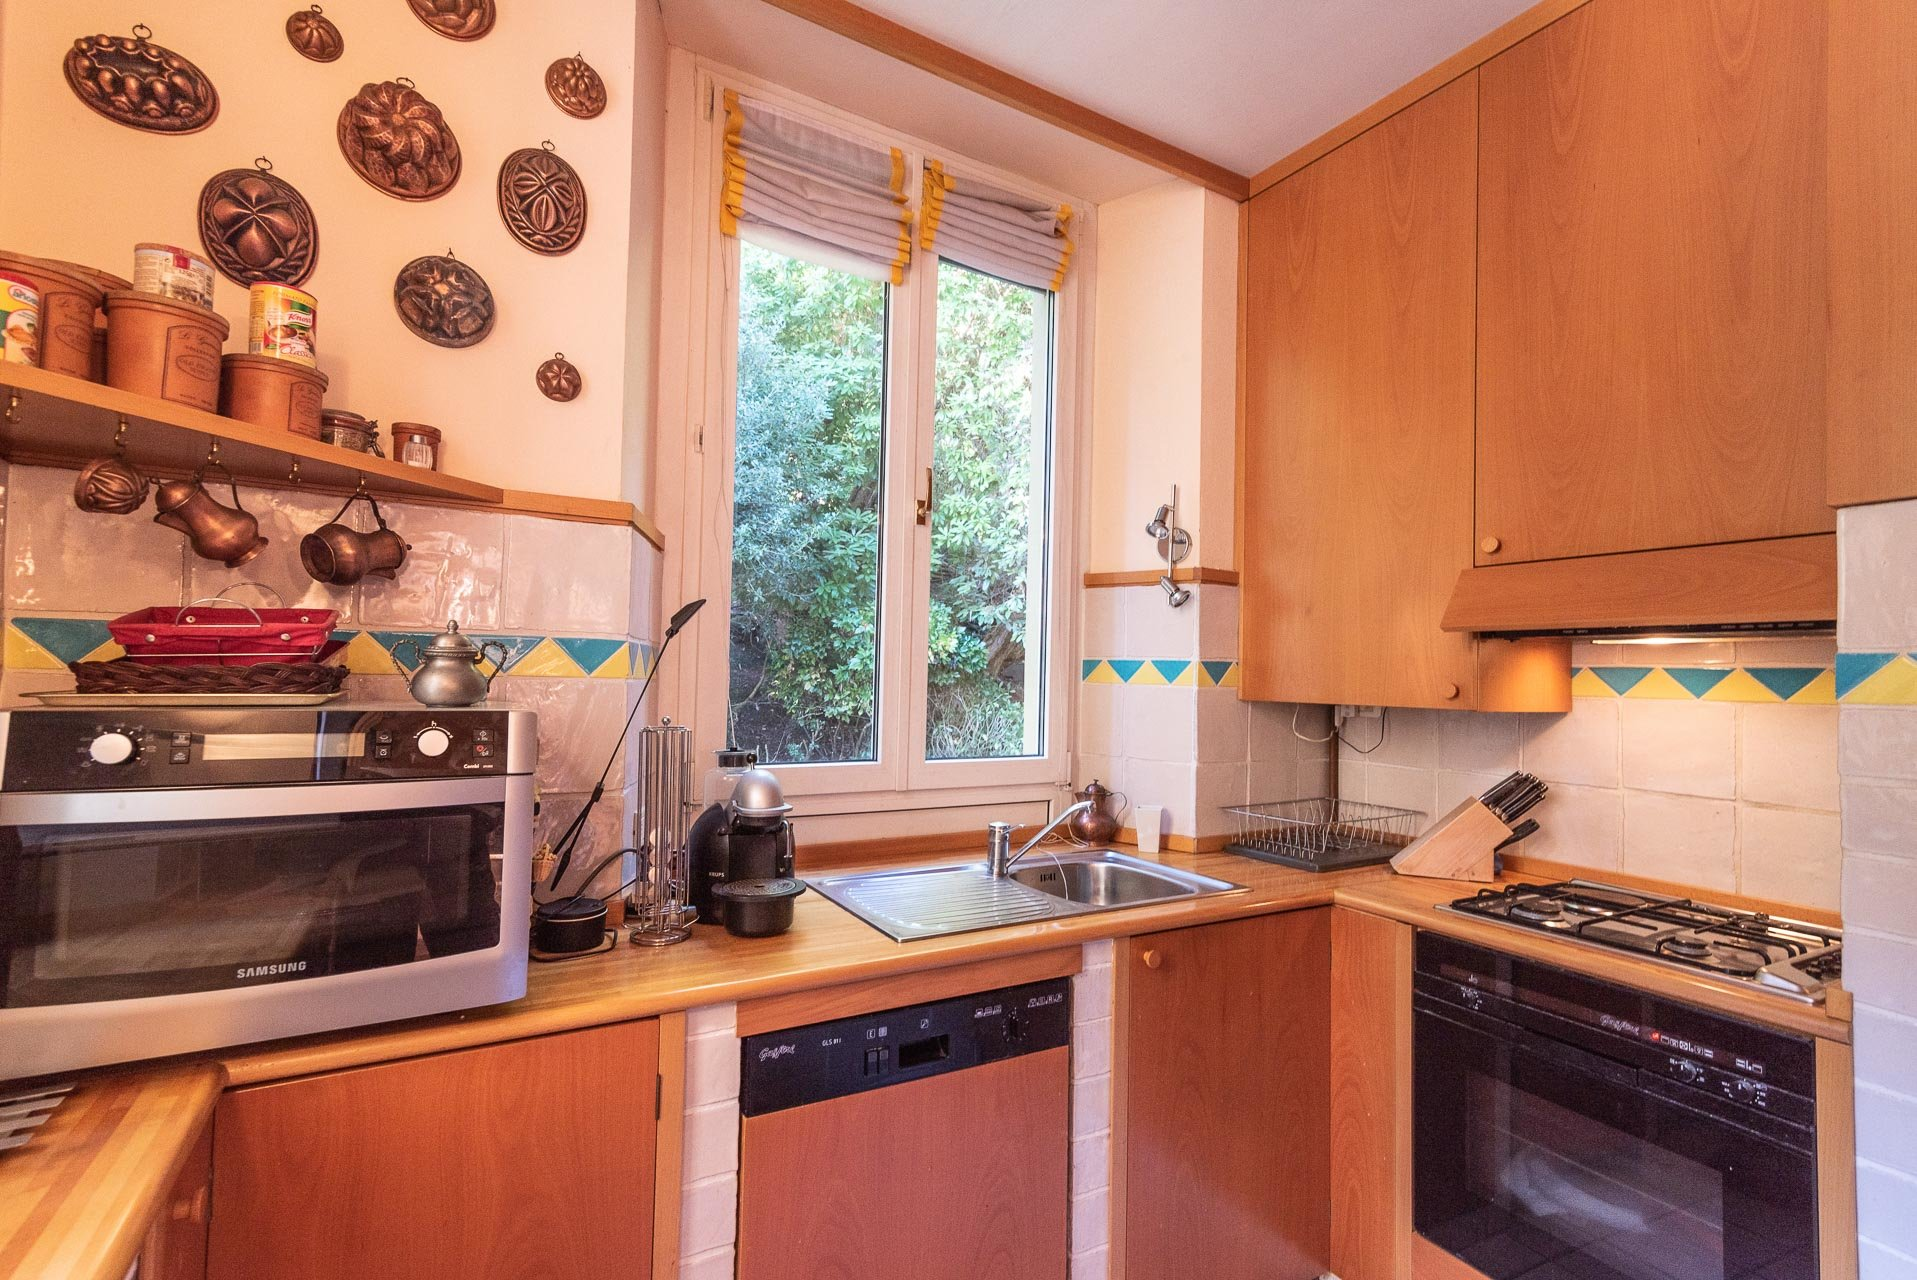 Lake view apartment for sell in Baveno - kitchen